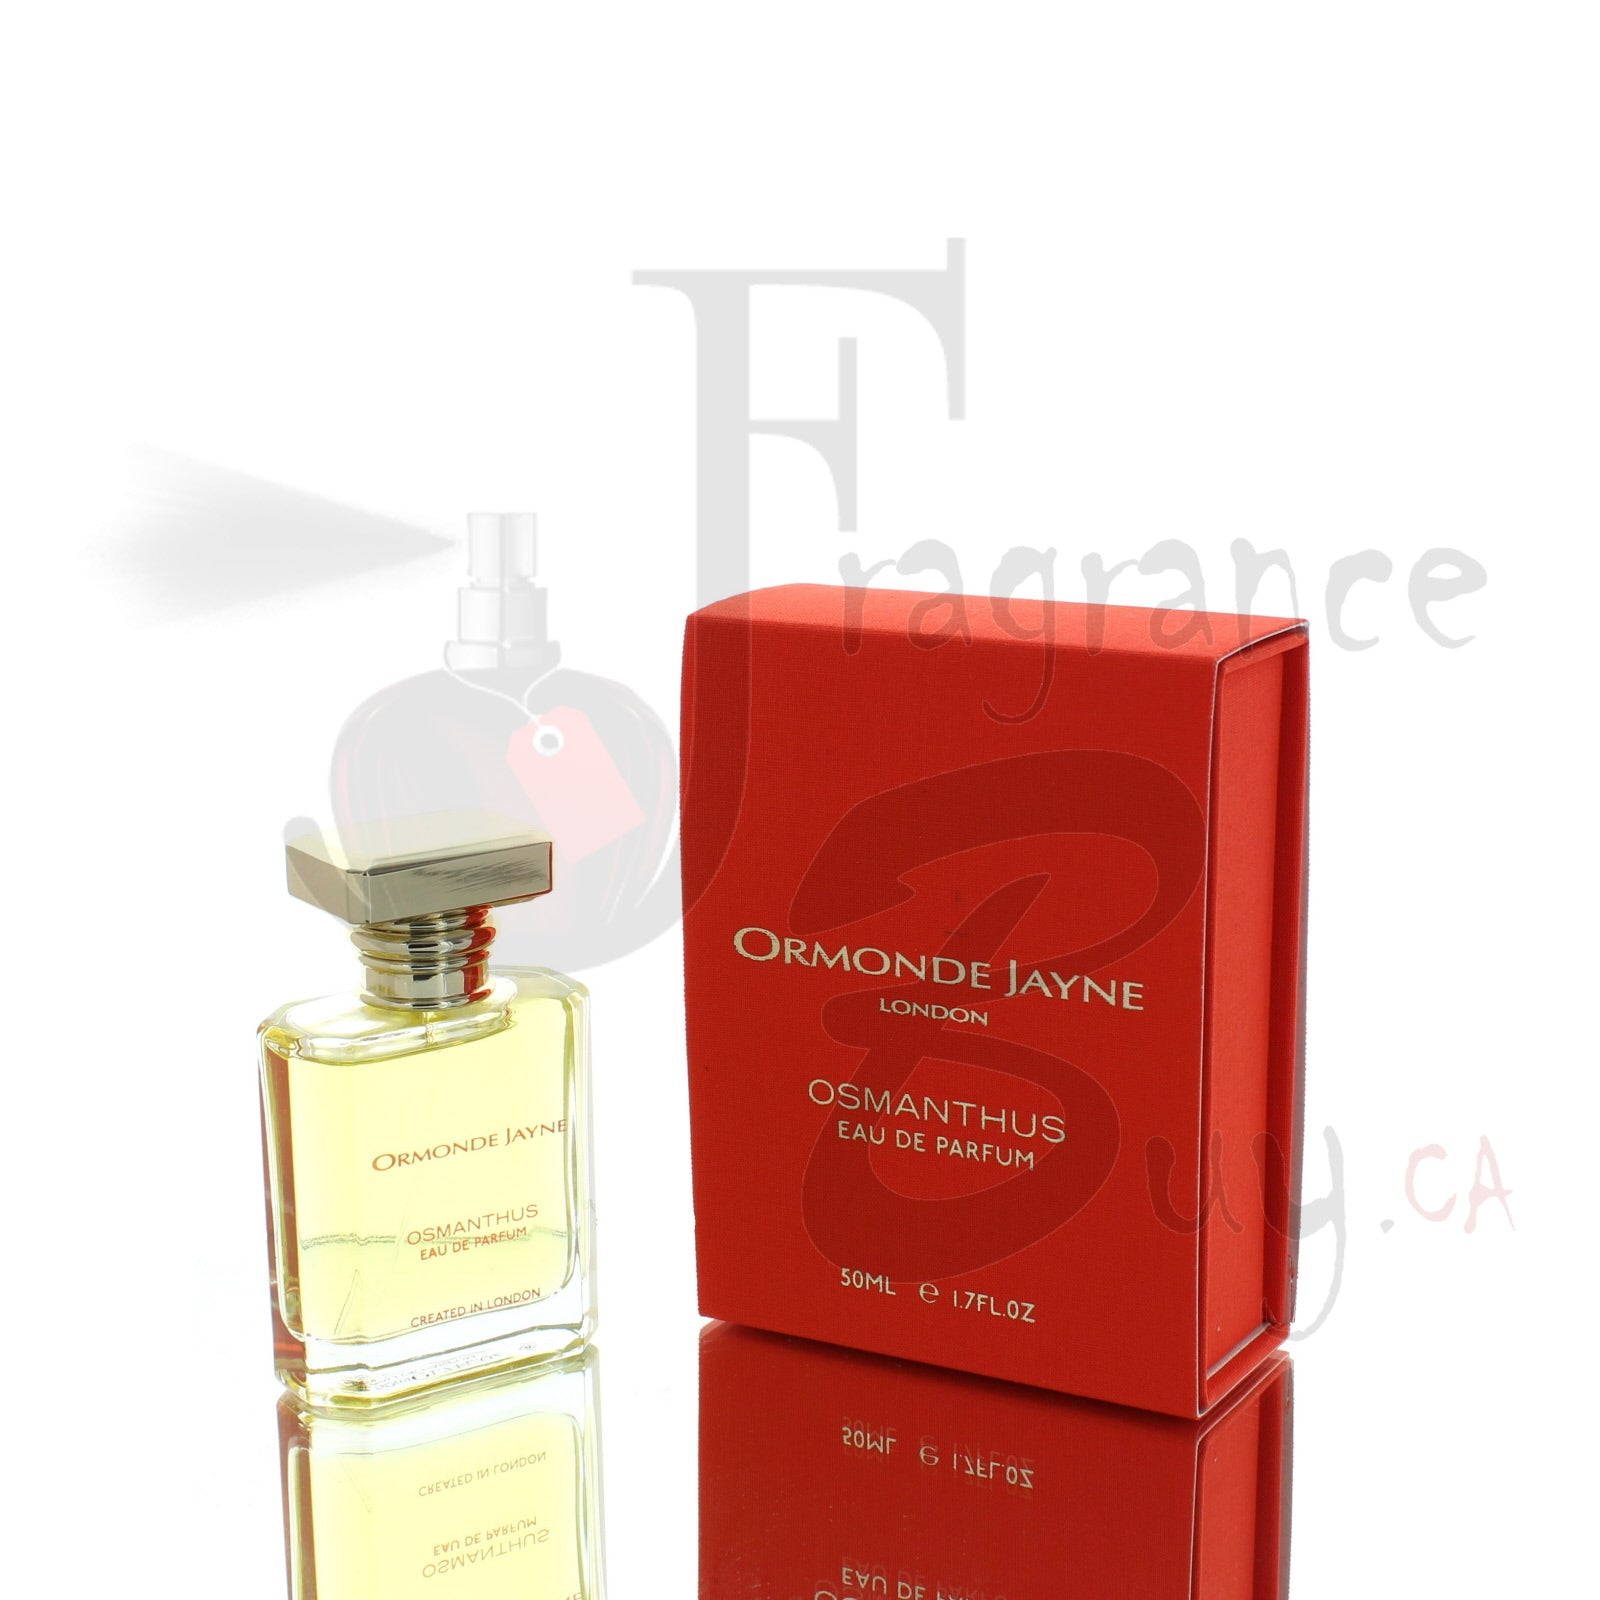 Ormonde Jayne Osmanthus For Man/Woman